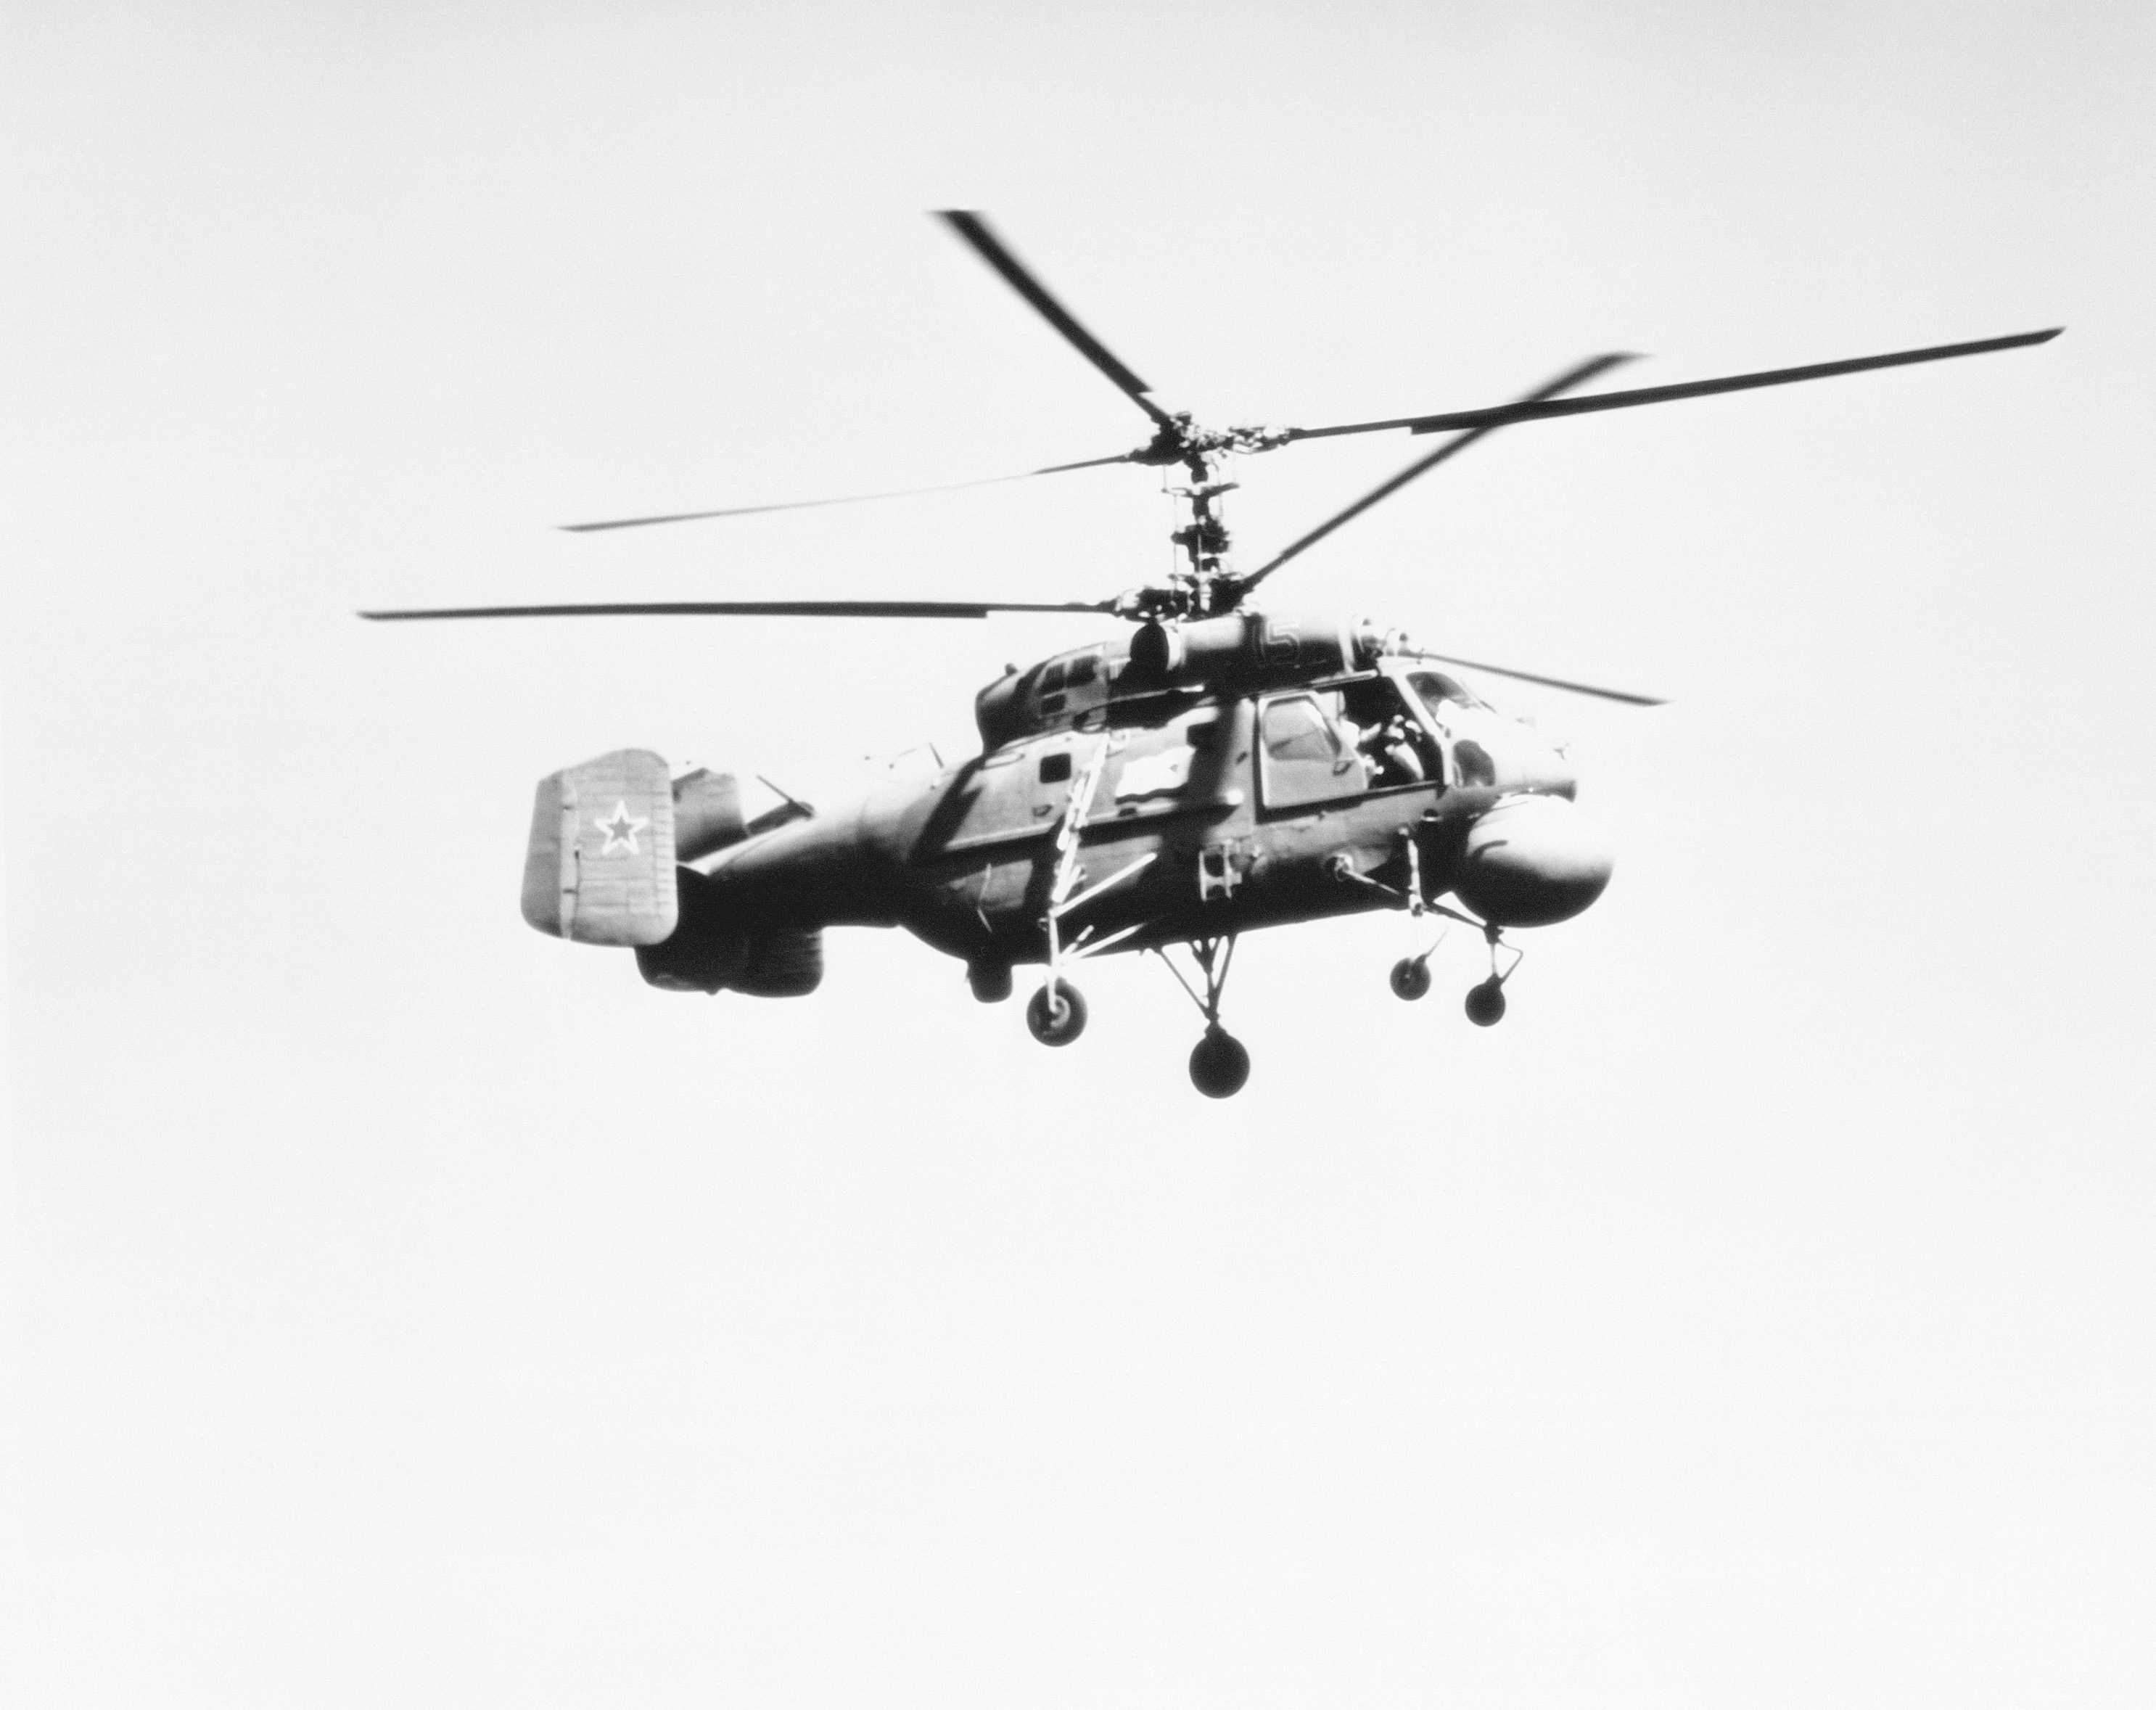 A right side view of a Soviet Ka-25 Hormone B anti-submarine warfare helicopter in flight